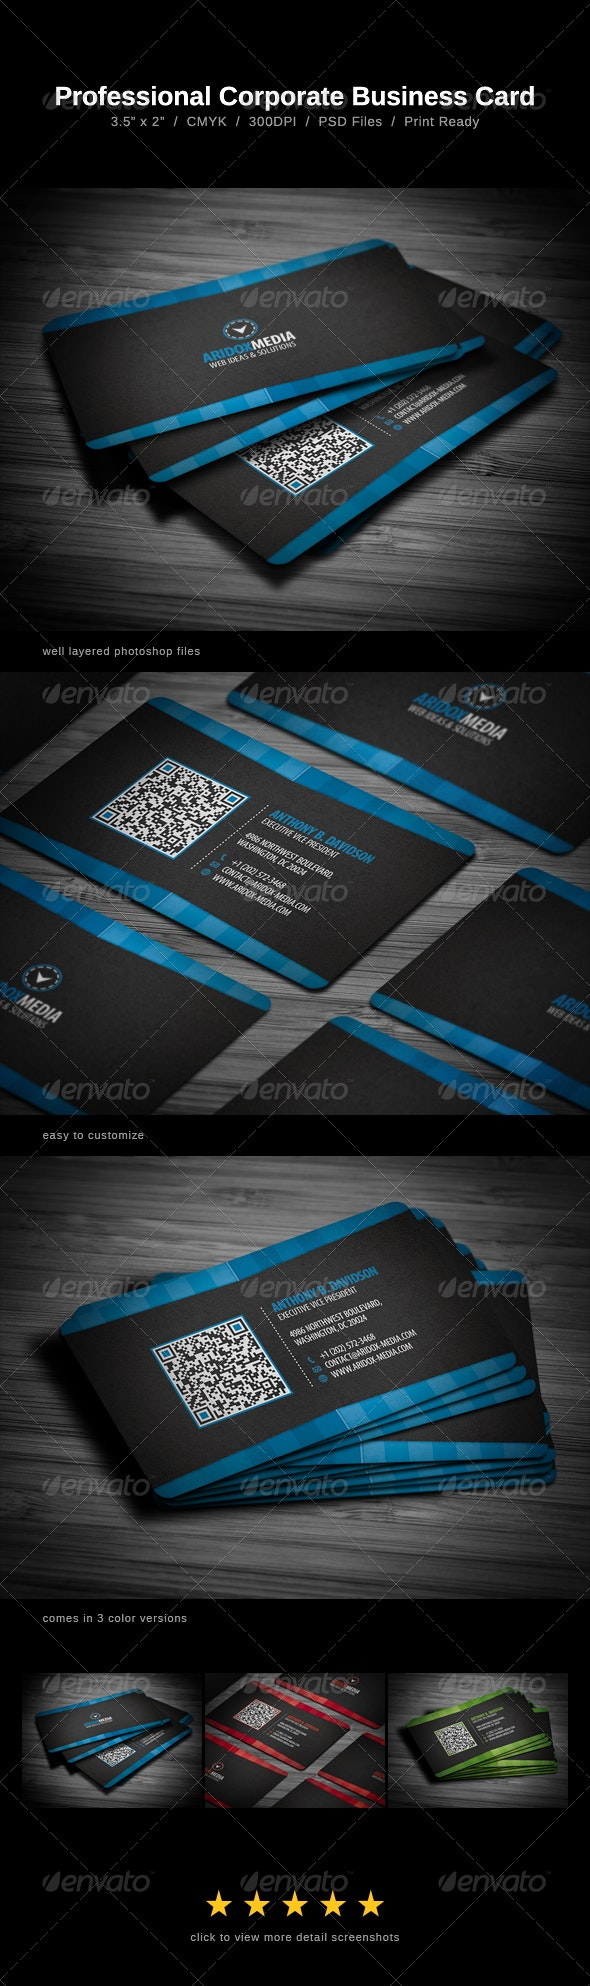 Professional Corporate Business Card - Corporate Business Cards